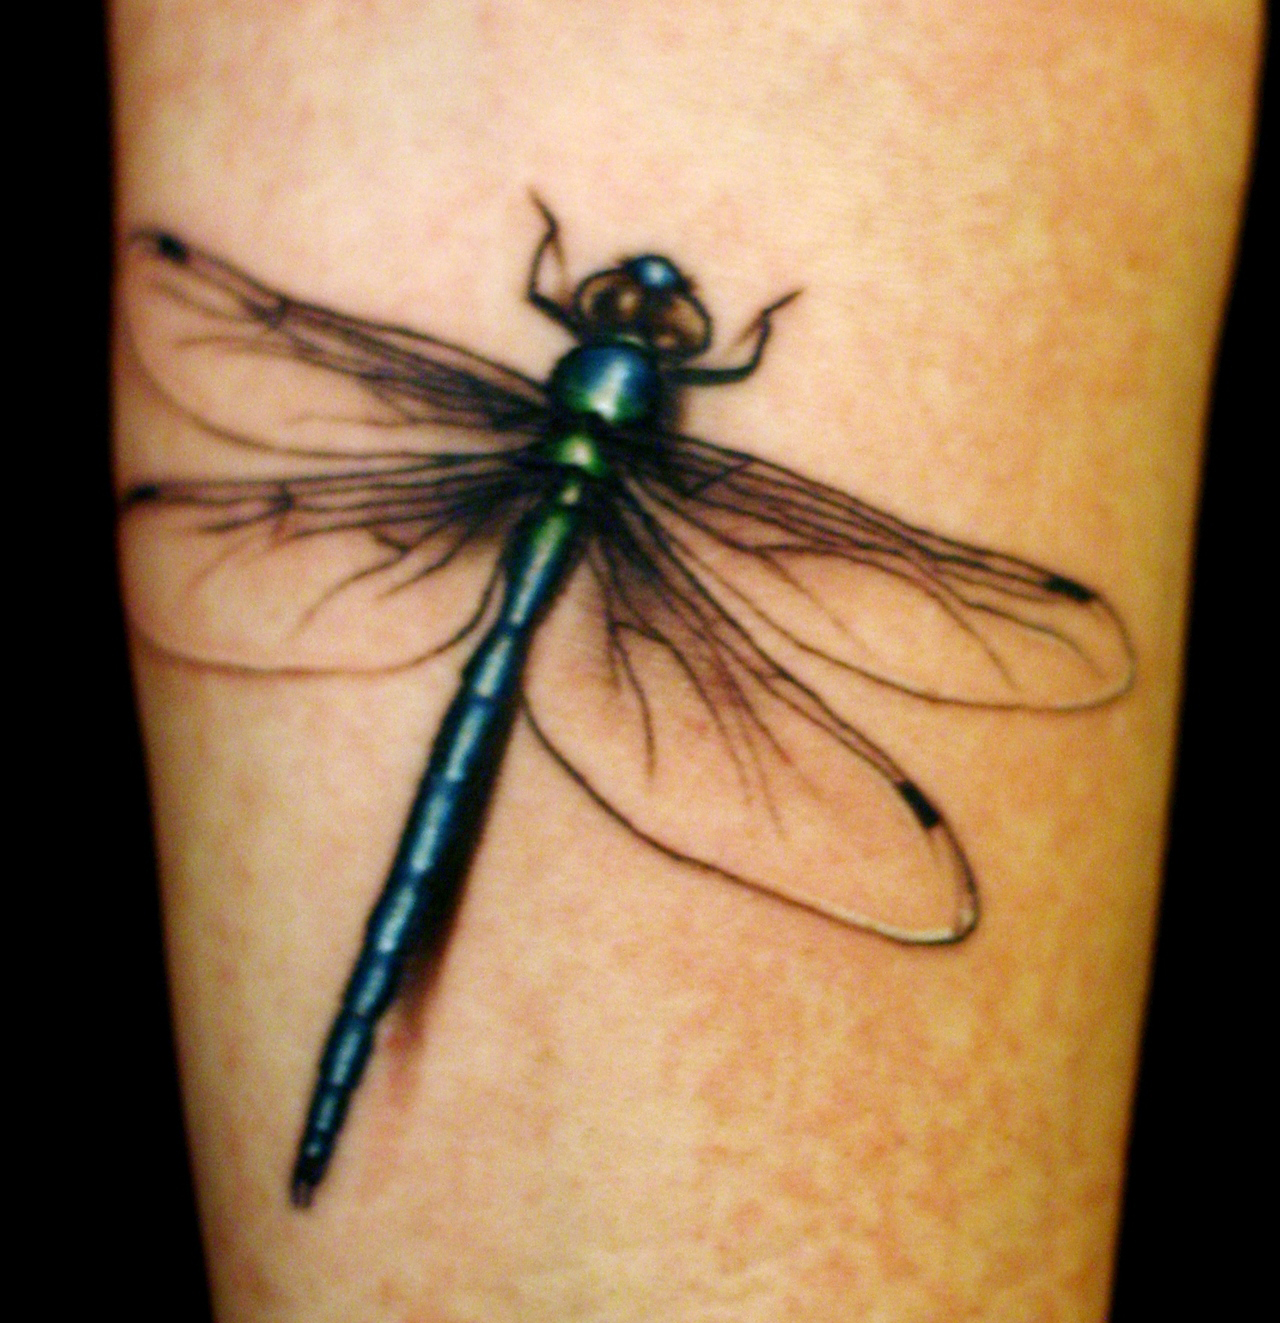 dragonfly tattoo3d tattoos. Black Bedroom Furniture Sets. Home Design Ideas